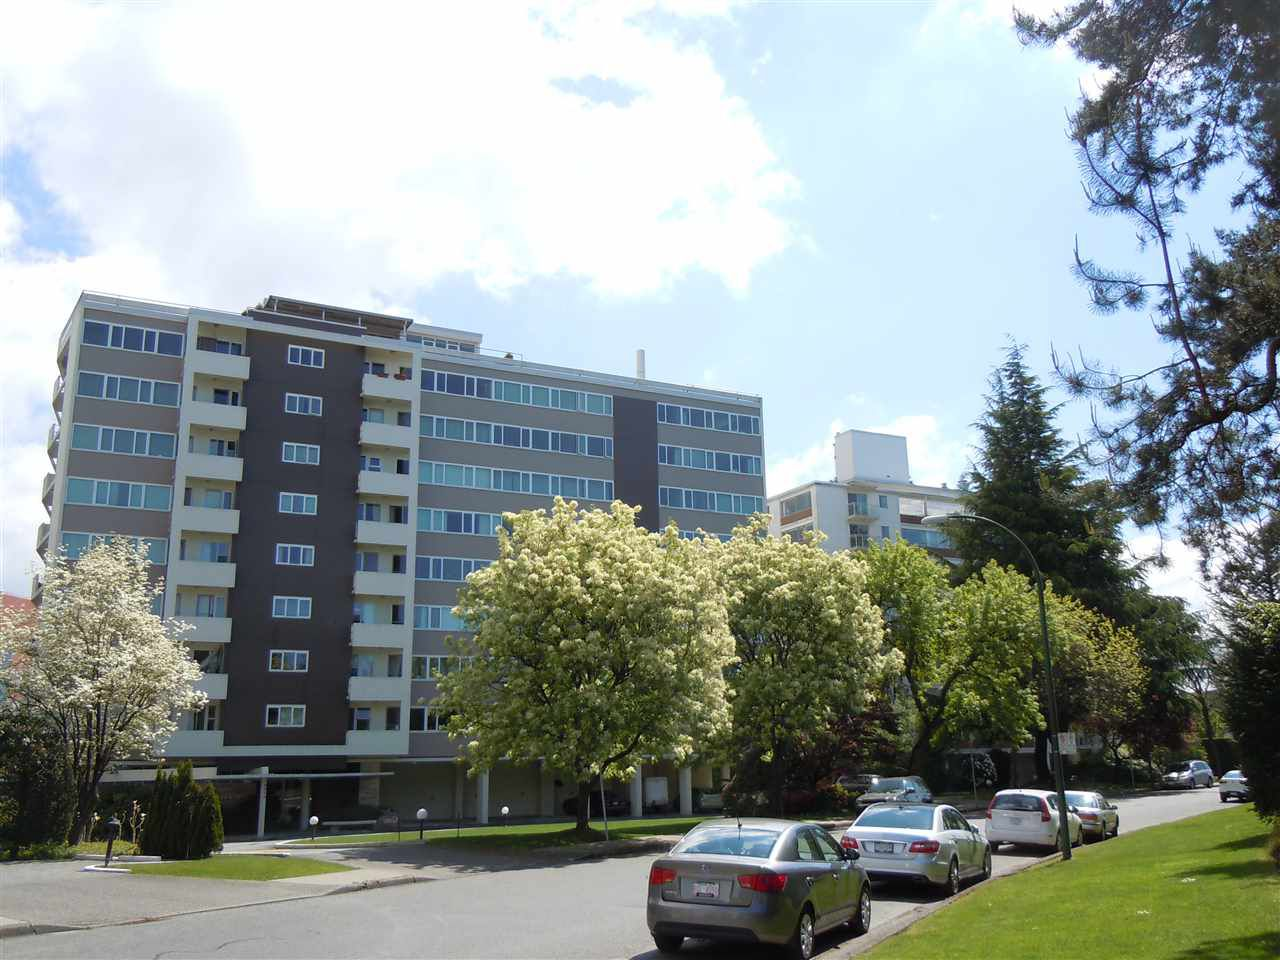 """Main Photo: 504 6026 TISDALL ST in Vancouver: Oakridge VW Condo for sale in """"Oakridge Towers"""" (Vancouver West)  : MLS®# R2021576"""